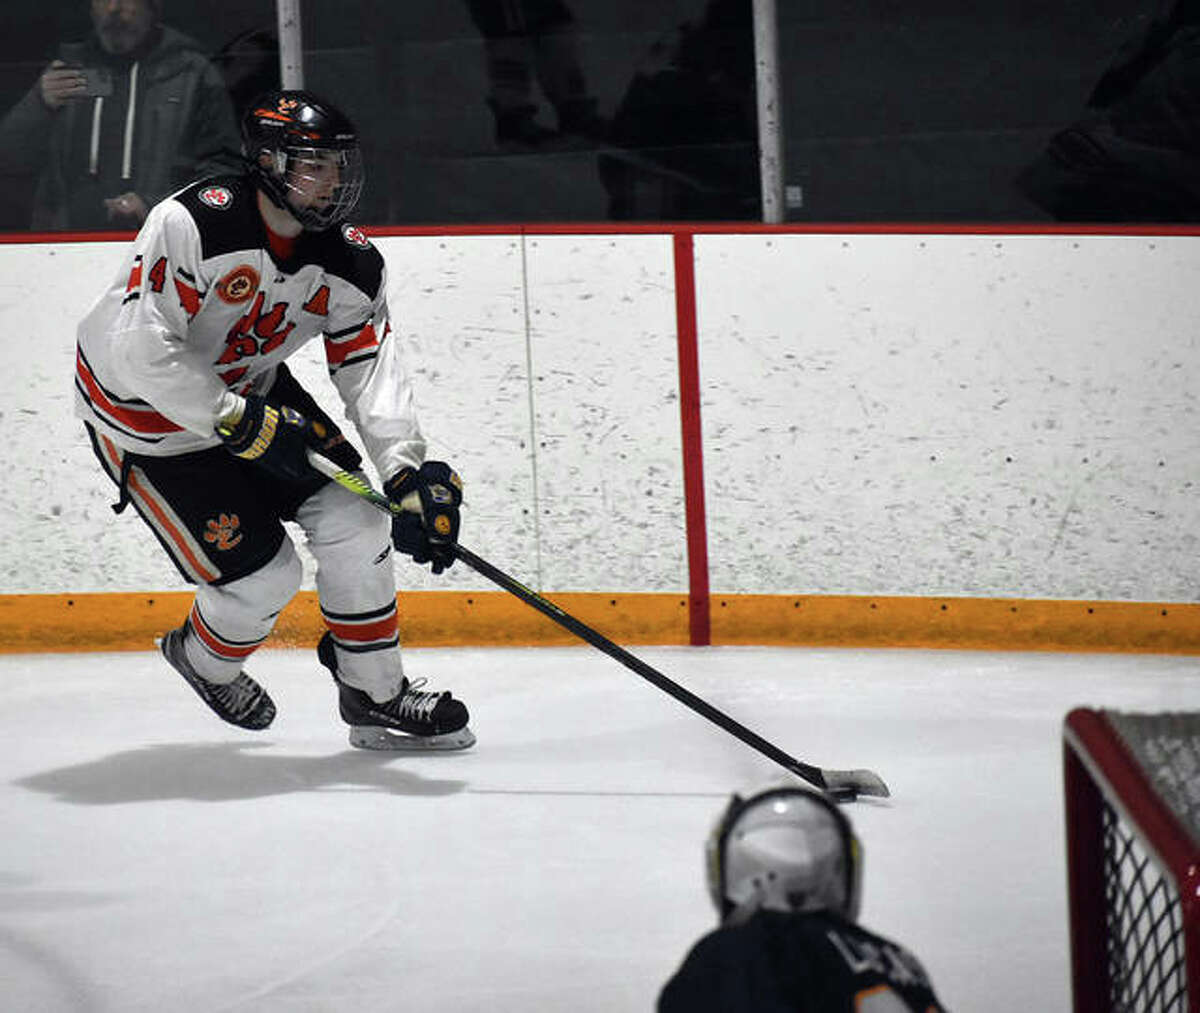 Edwardsville's Parker Terch skates towards the goal after collecting the puck near the boards in the second period against O'Fallon inside the East Alton Ice Arena.